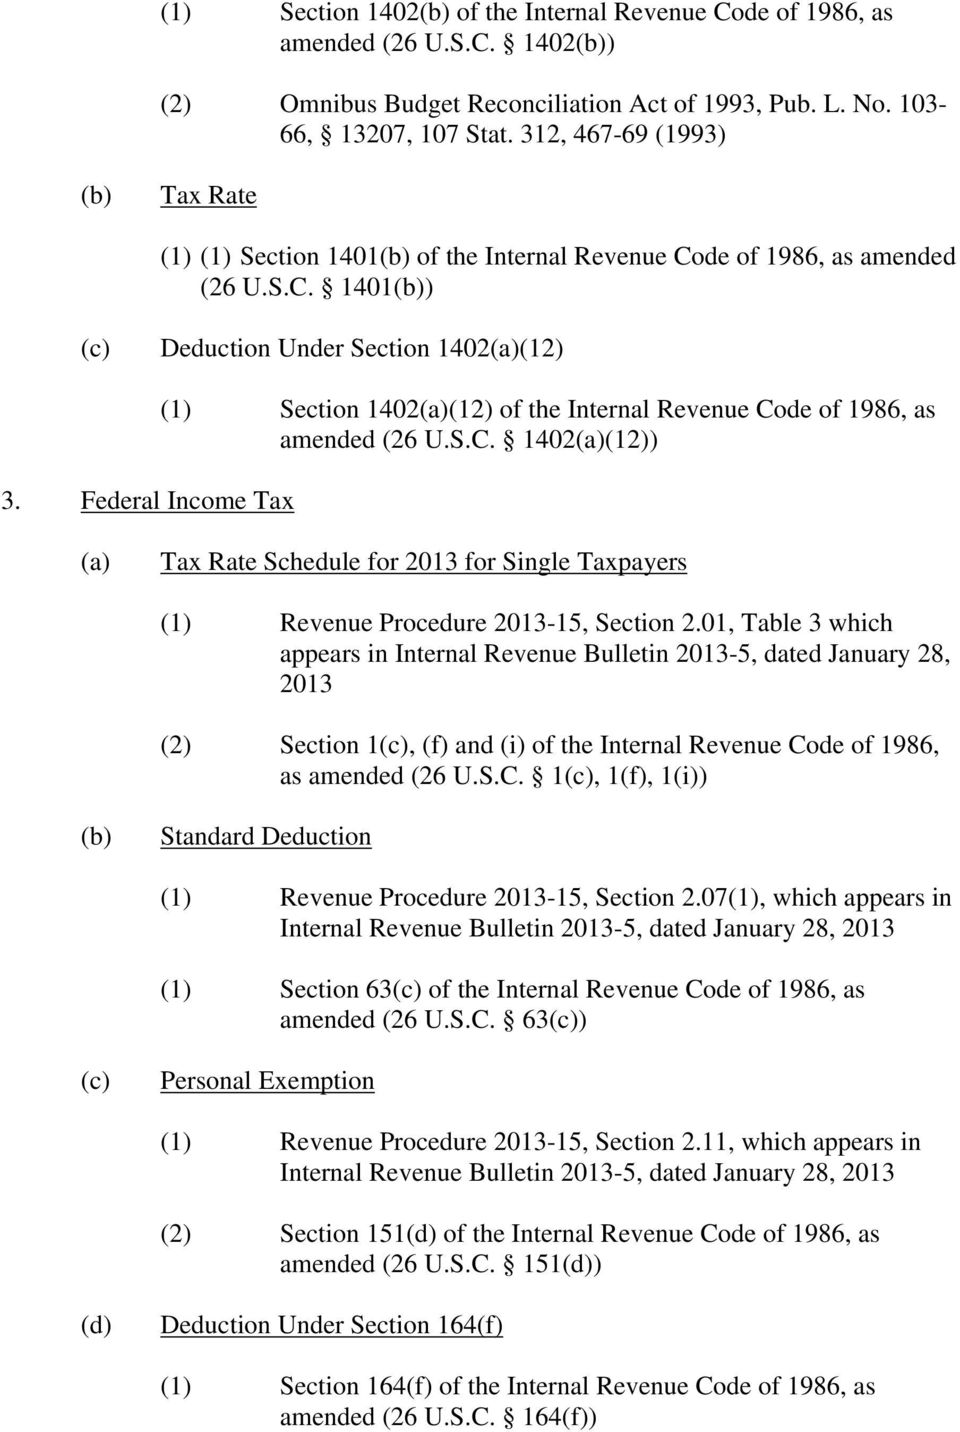 Federal Income Tax (1) Section 1402(12) of the Internal Revenue Code of 1986, as amended (26 U.S.C. 1402(12)) Tax Rate Schedule for 2013 for Single Taxpayers (1) Revenue Procedure 2013-15, Section 2.